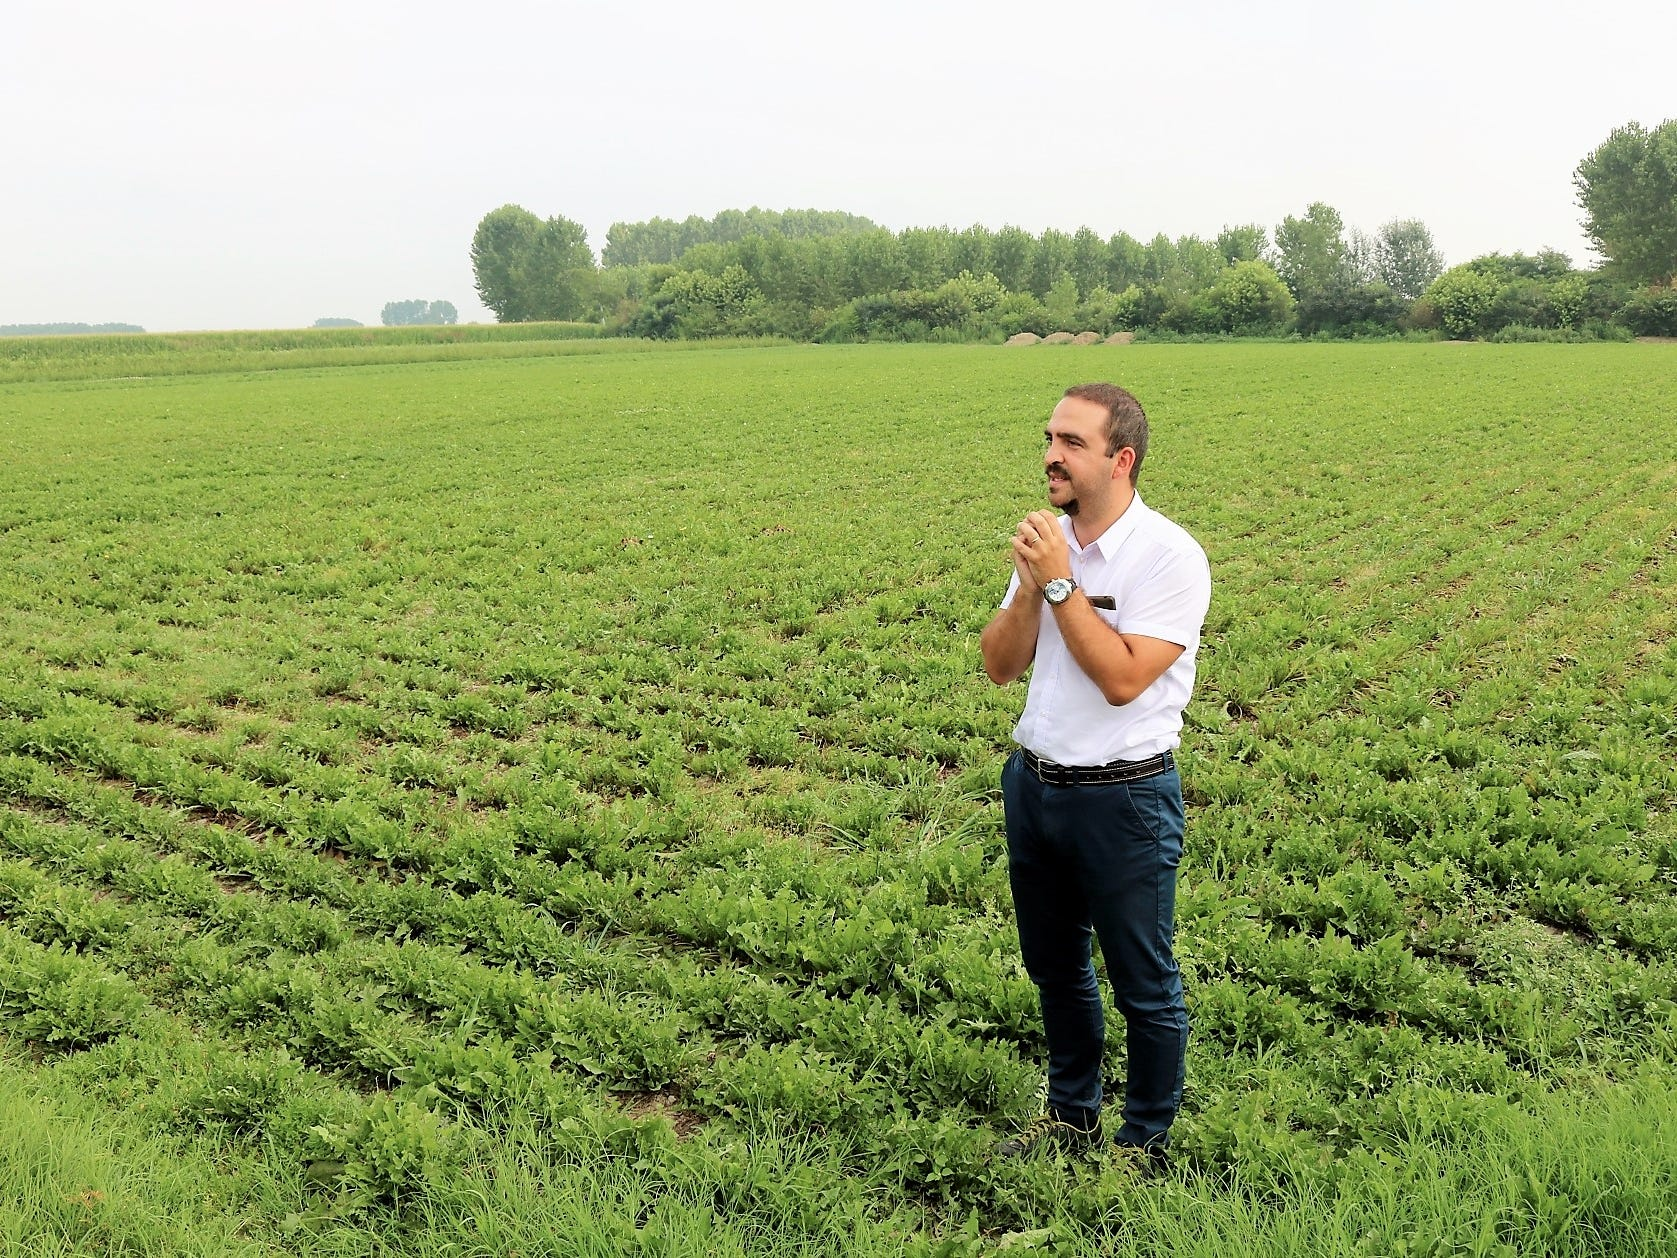 """Dandelion greens are native to the Piedmont region and can be found in salads and pastas from the region. """"This is fundamental for Martini,"""" Garneri says. """"If we take this out of Martini, it's a completely different thing. You cannot replicate it in other ways."""""""